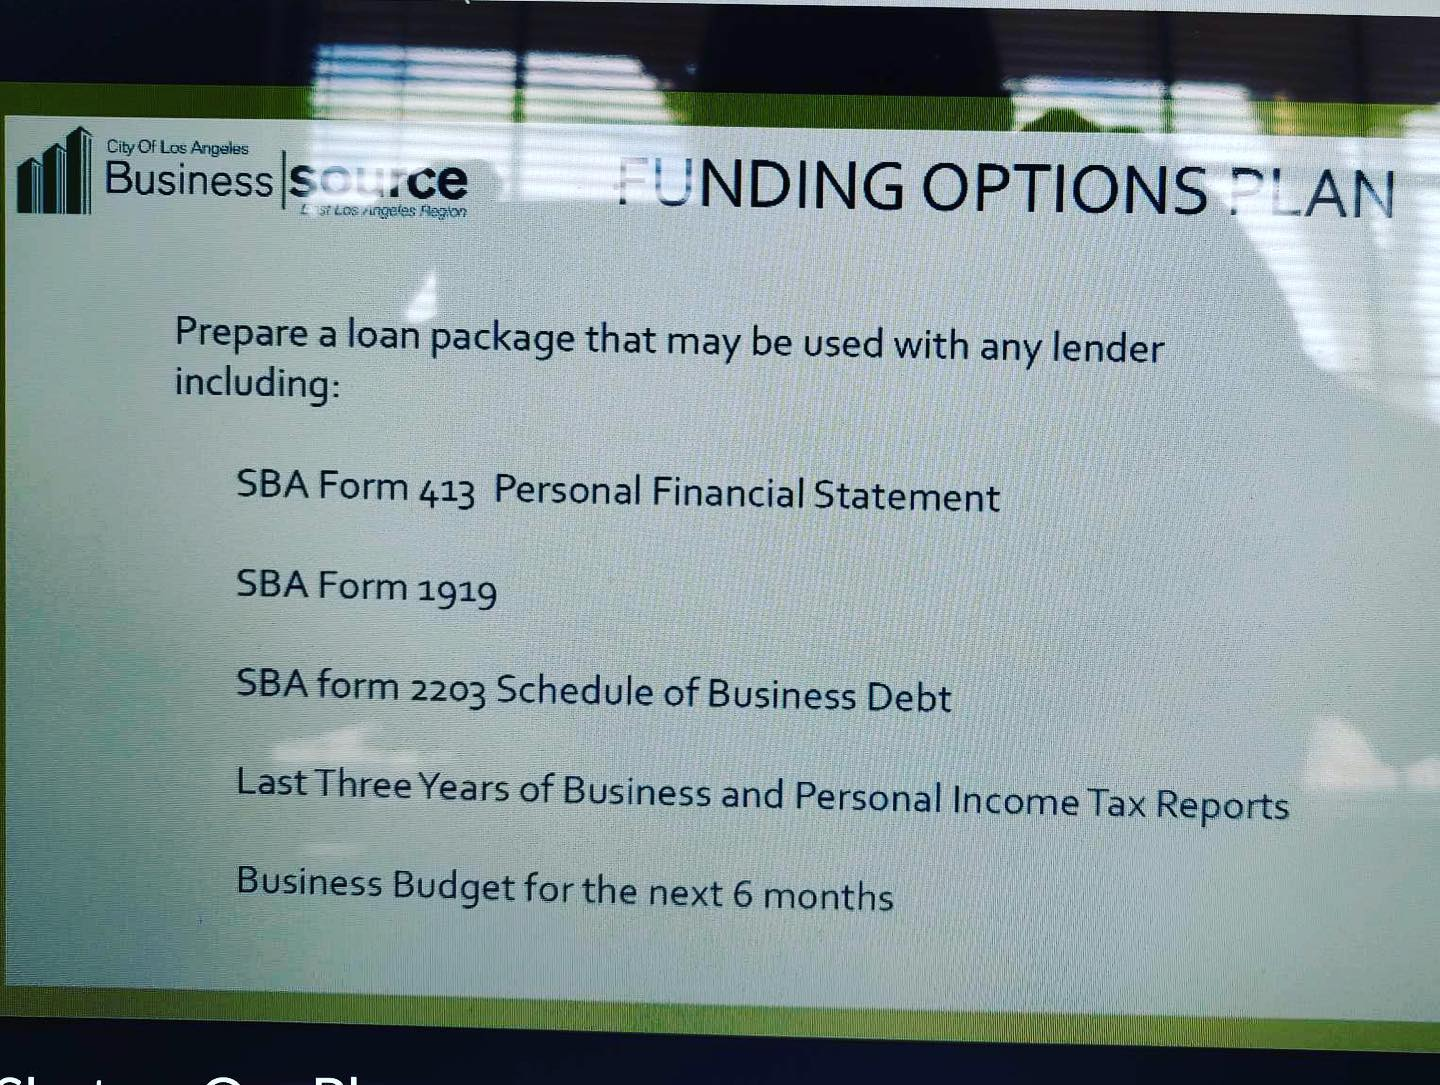 Barrio Planners co-hosted a Small Business Loan Webinar 4-17-2020